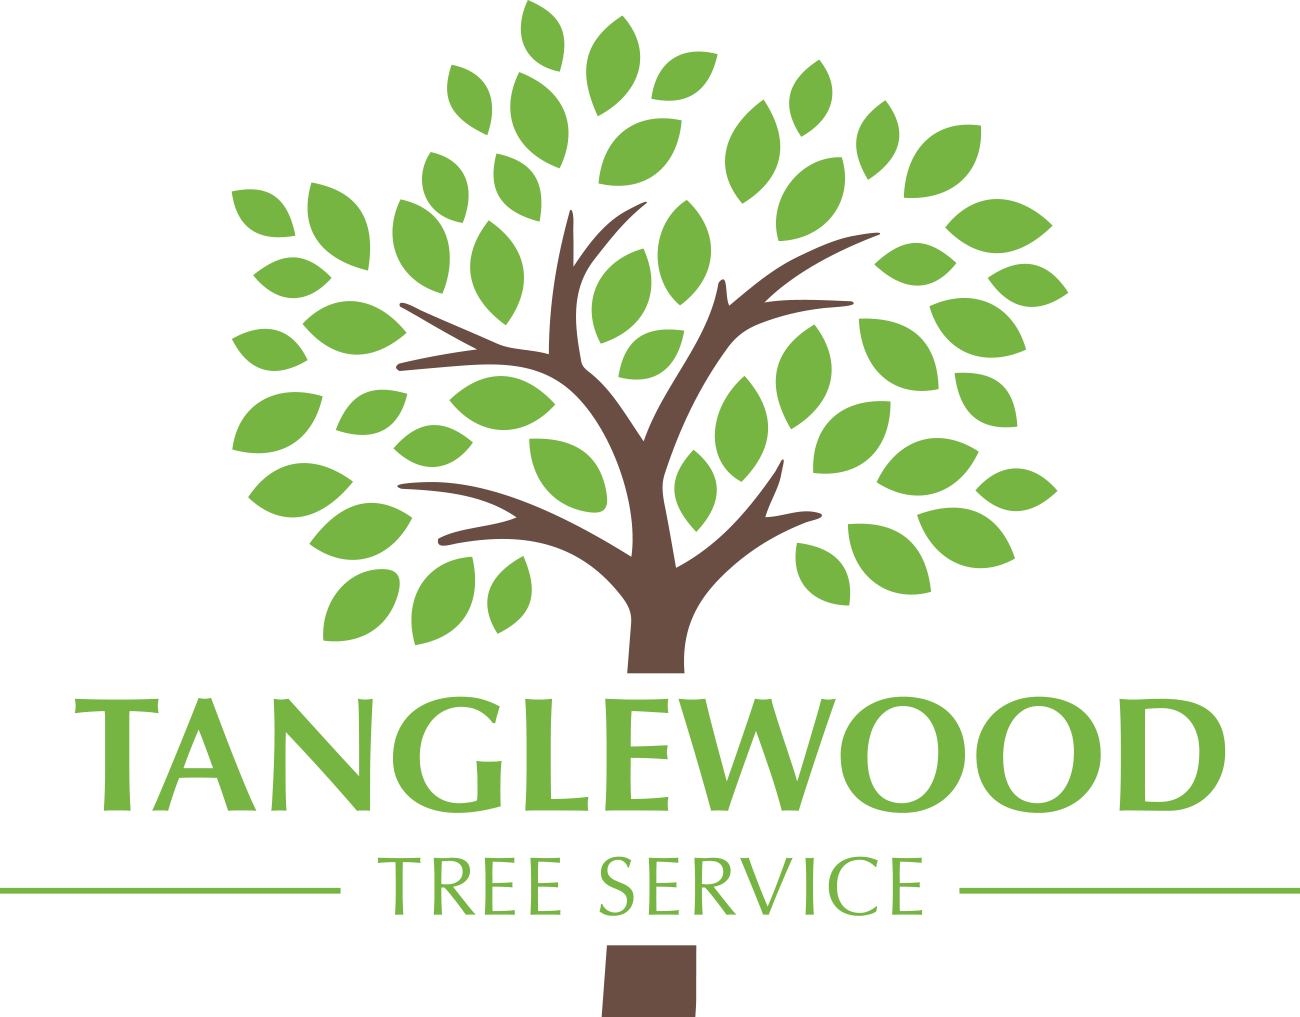 Tree Removal Tree Trimming Fort Collins Co Tanglewood Tree Service